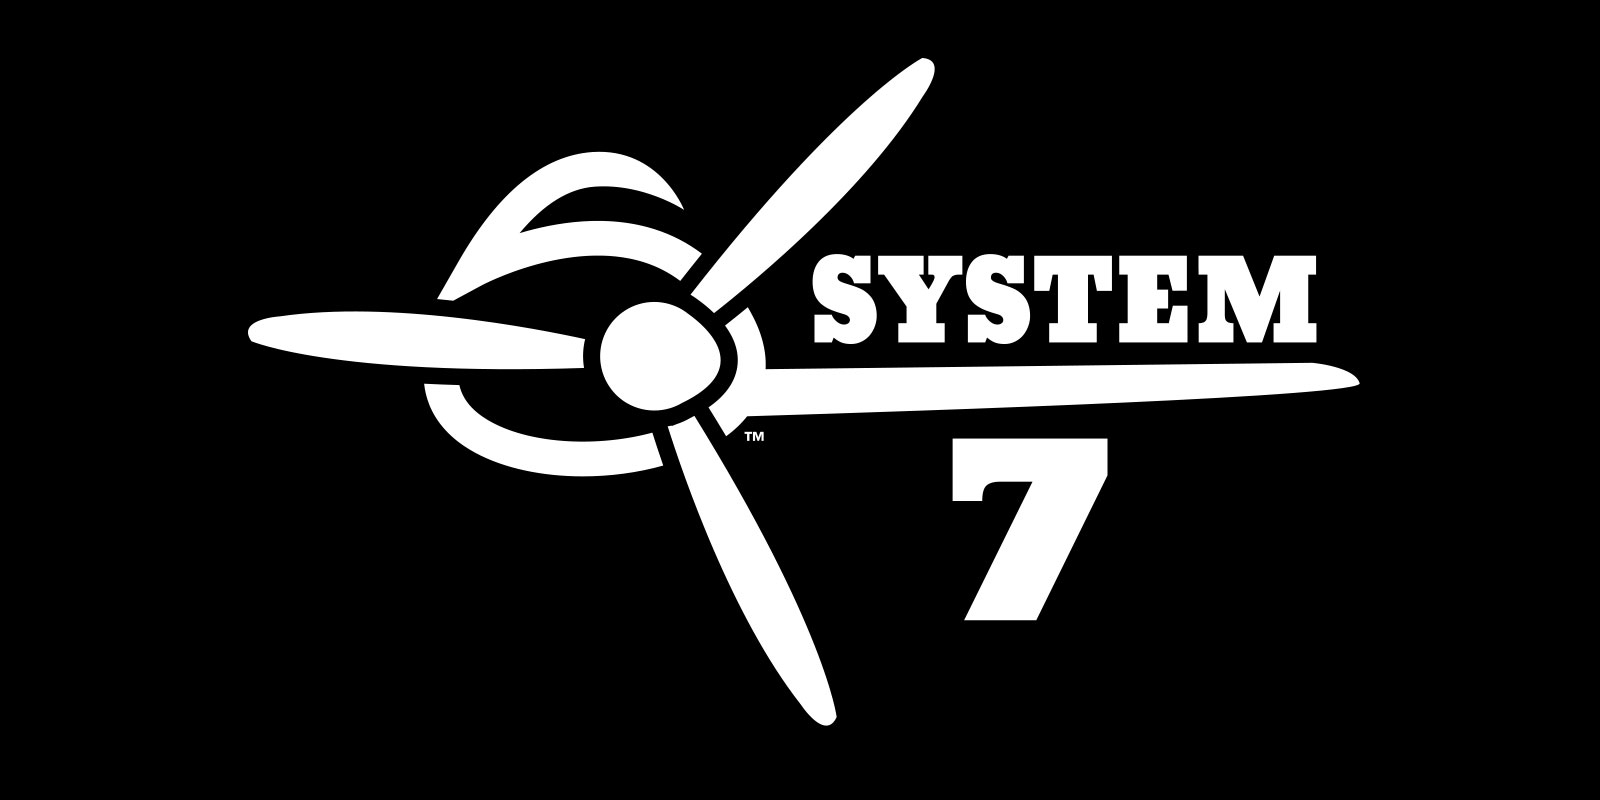 Image of the final light-on-dark logo version created for the Superflite System 7 aircraft covering system